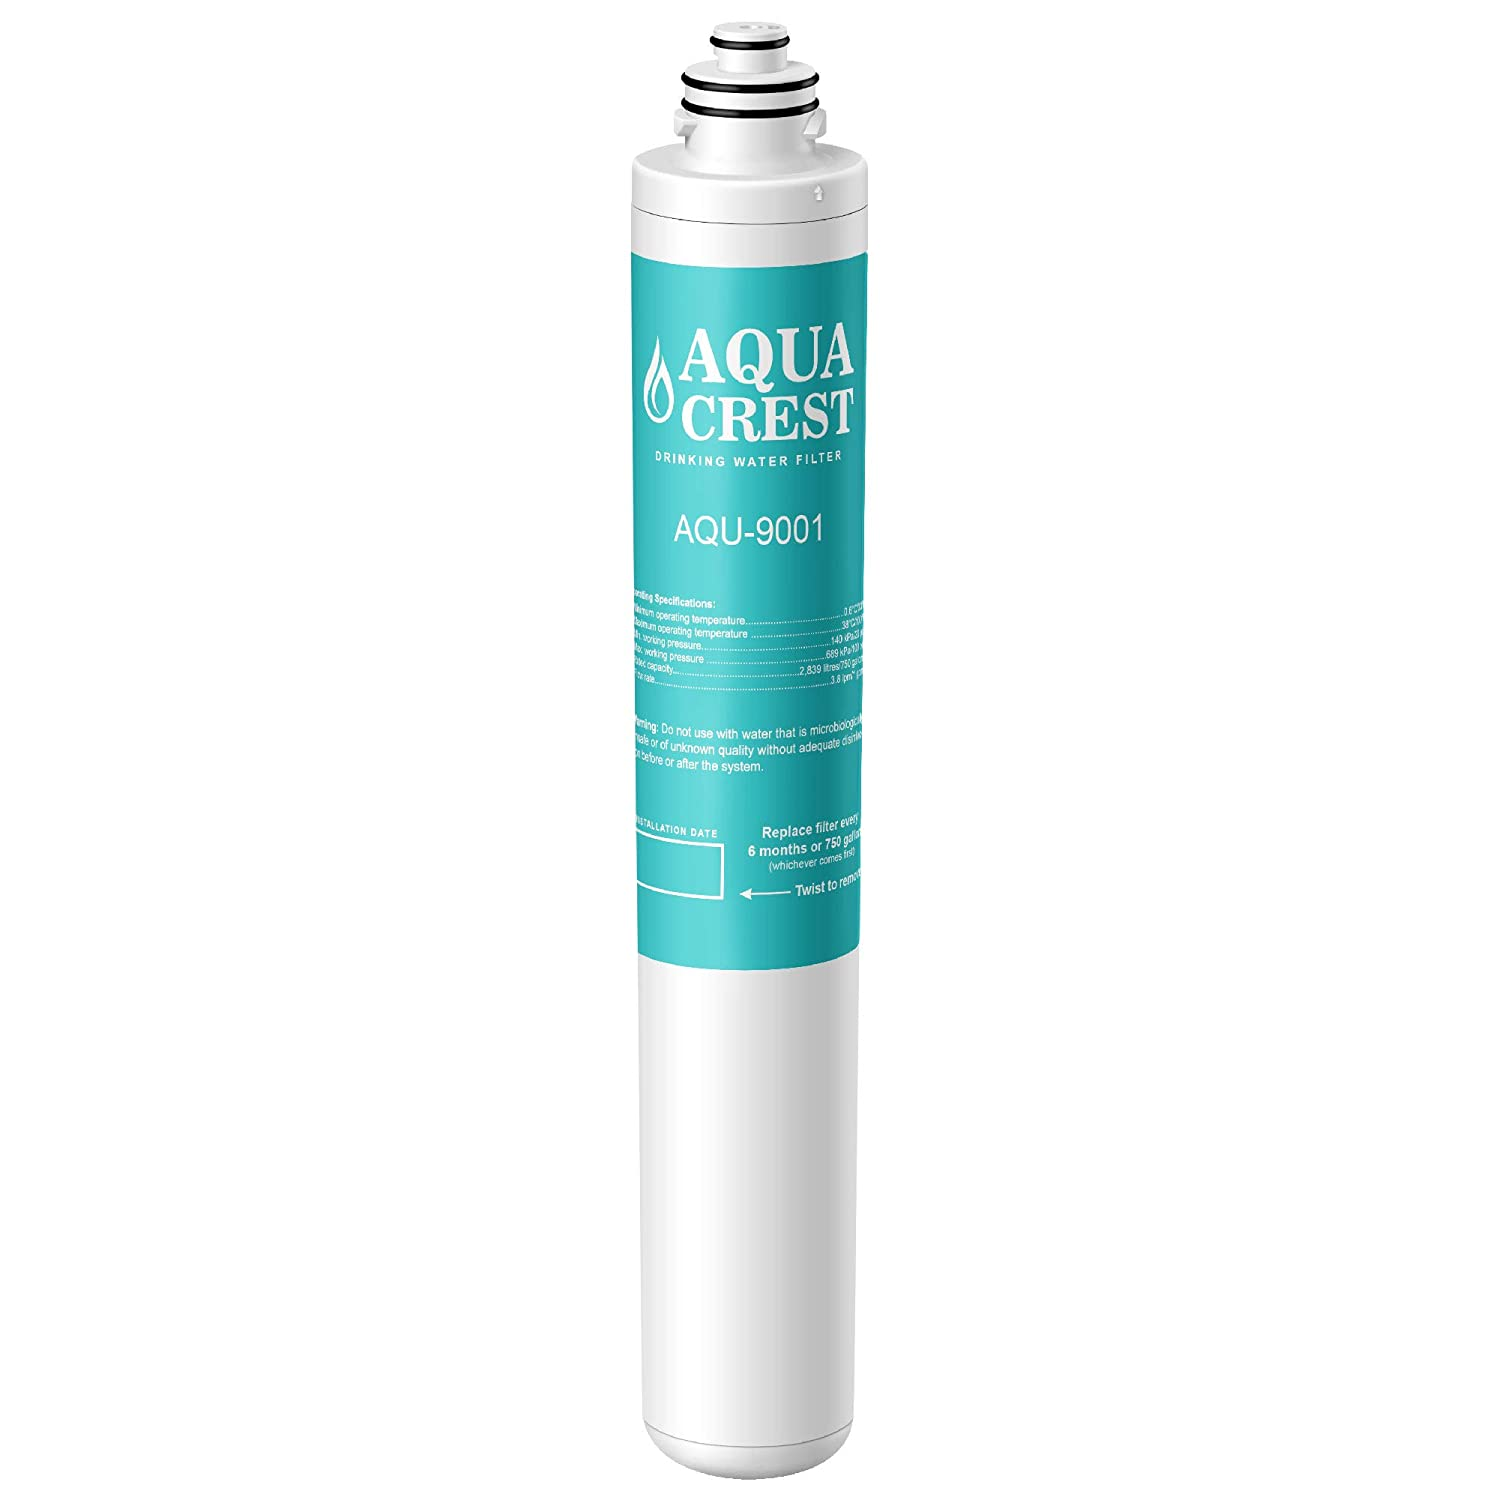 AQUACREST 9001 Under Sink Water Filter, Compatible with Moen 9001 PureTouch AquaSuite MicroTech 9000